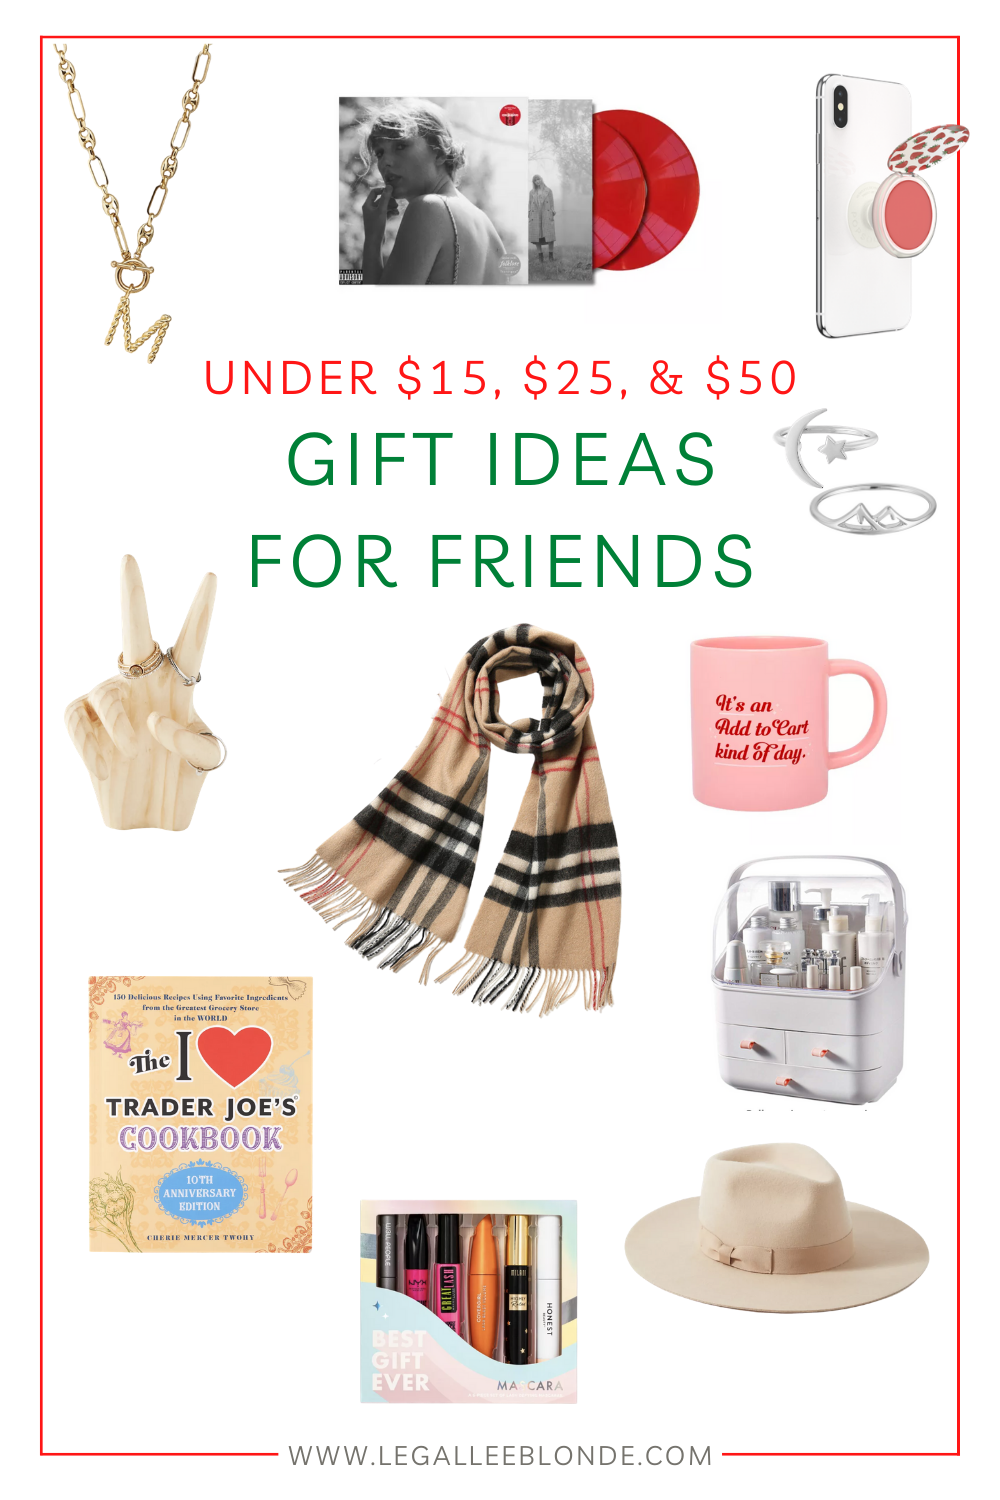 gift ideas for friends collage of gifts under $15, gifts under $25